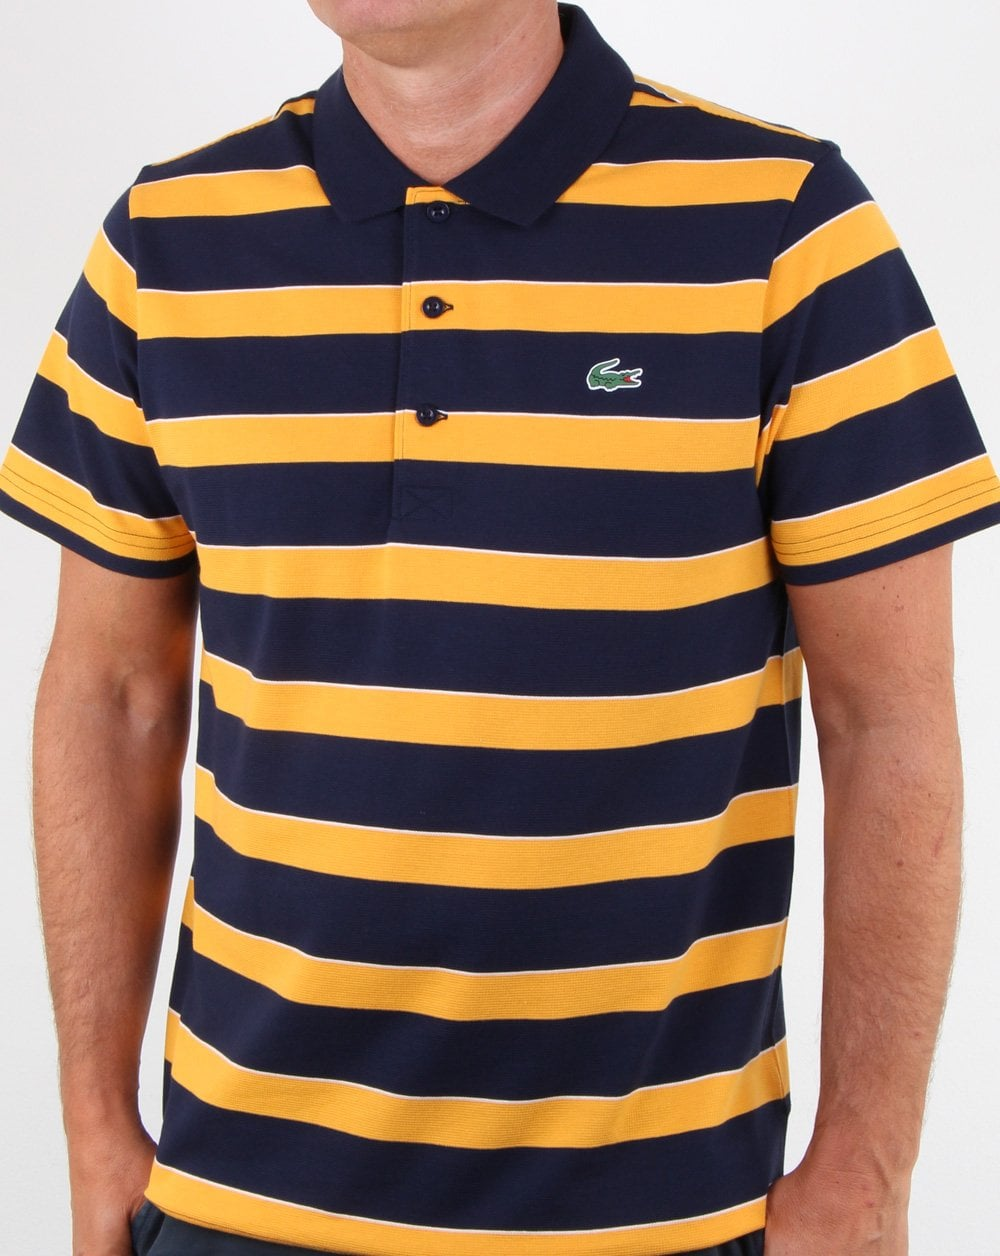 62bd06d79a218 Lacoste Lacoste Striped Polo Shirt Navy Yellow